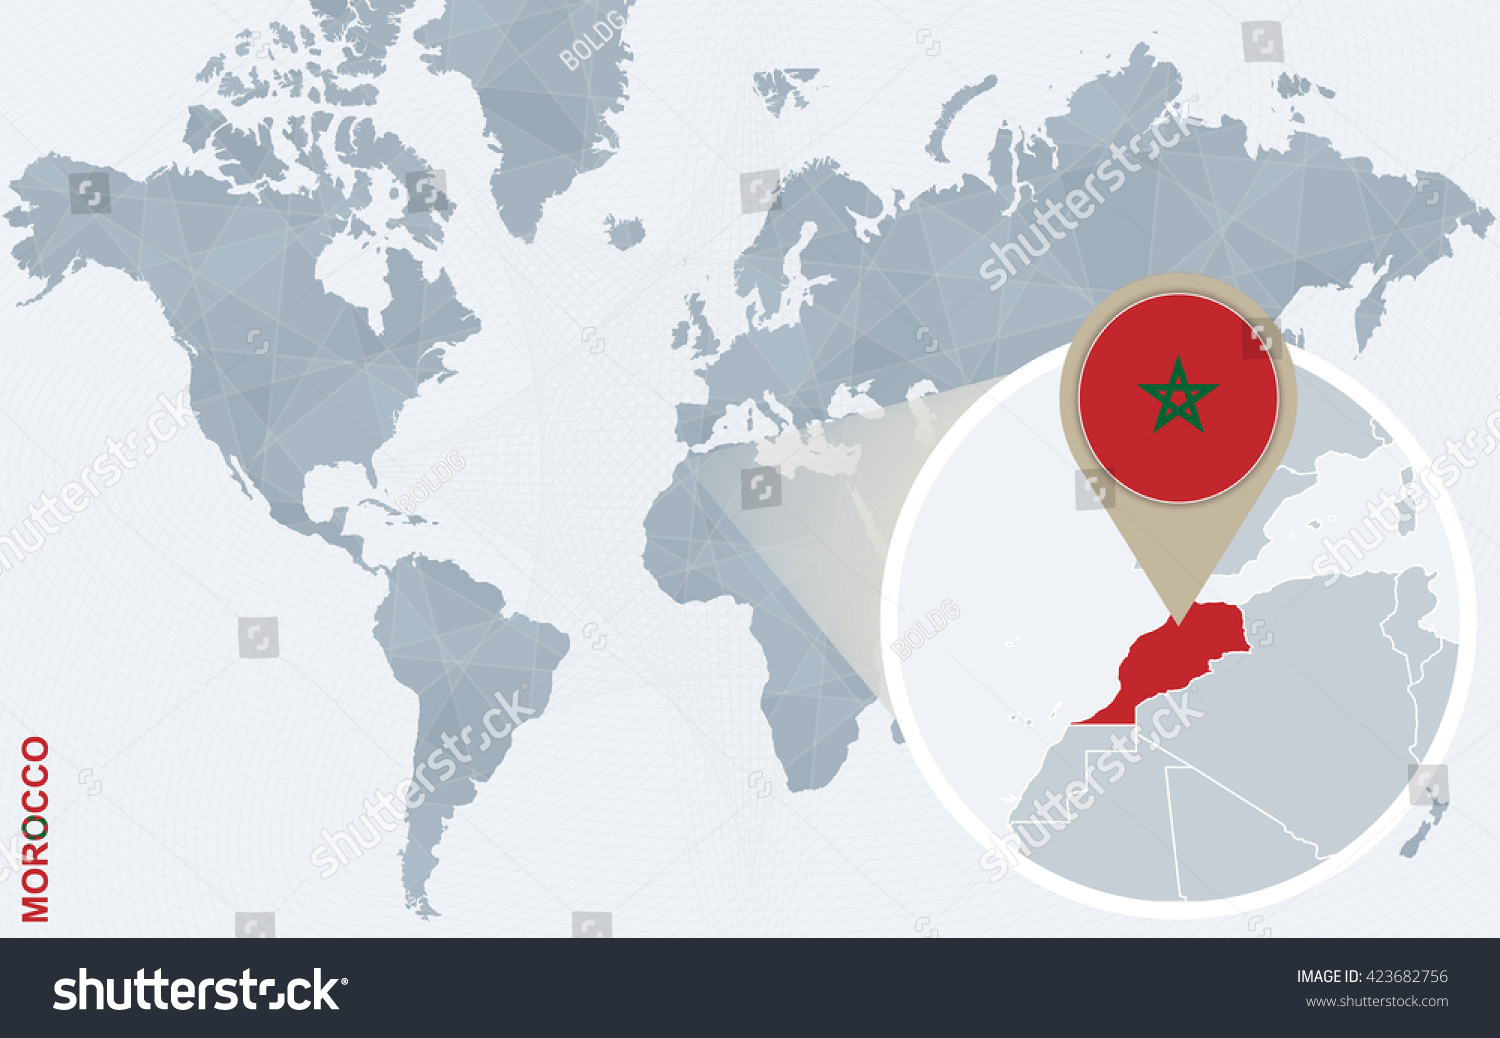 Abstract blue world map magnified morocco stock vector 2018 abstract blue world map with magnified morocco morocco flag and map vector illustration gumiabroncs Image collections